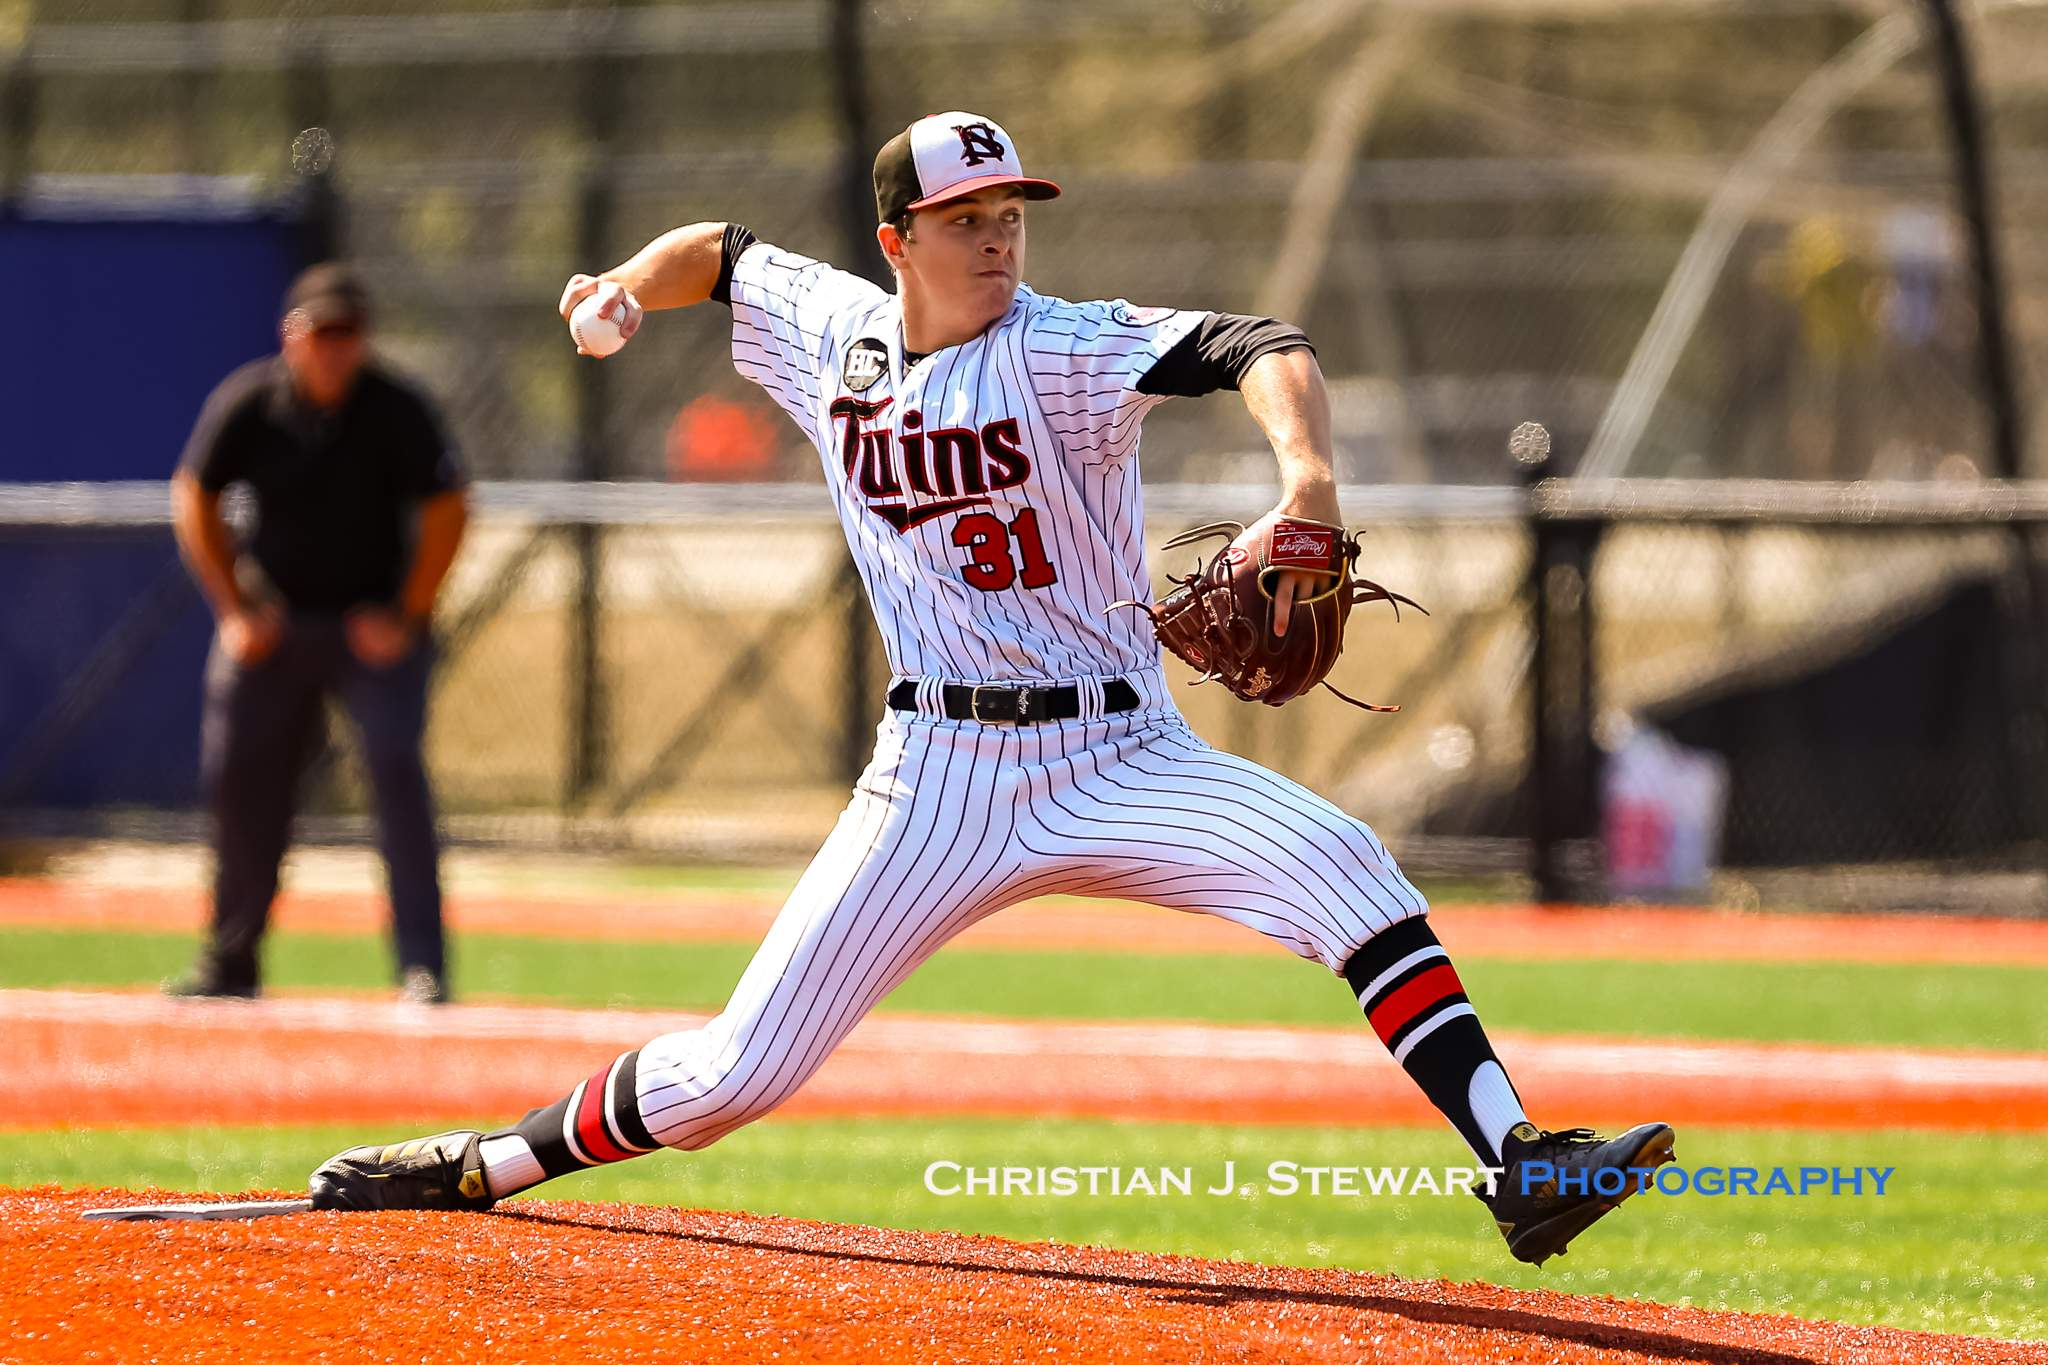 Liam Bates went the distance in the Twins victory over the Pirates (Photo: Christian J. Stewart)